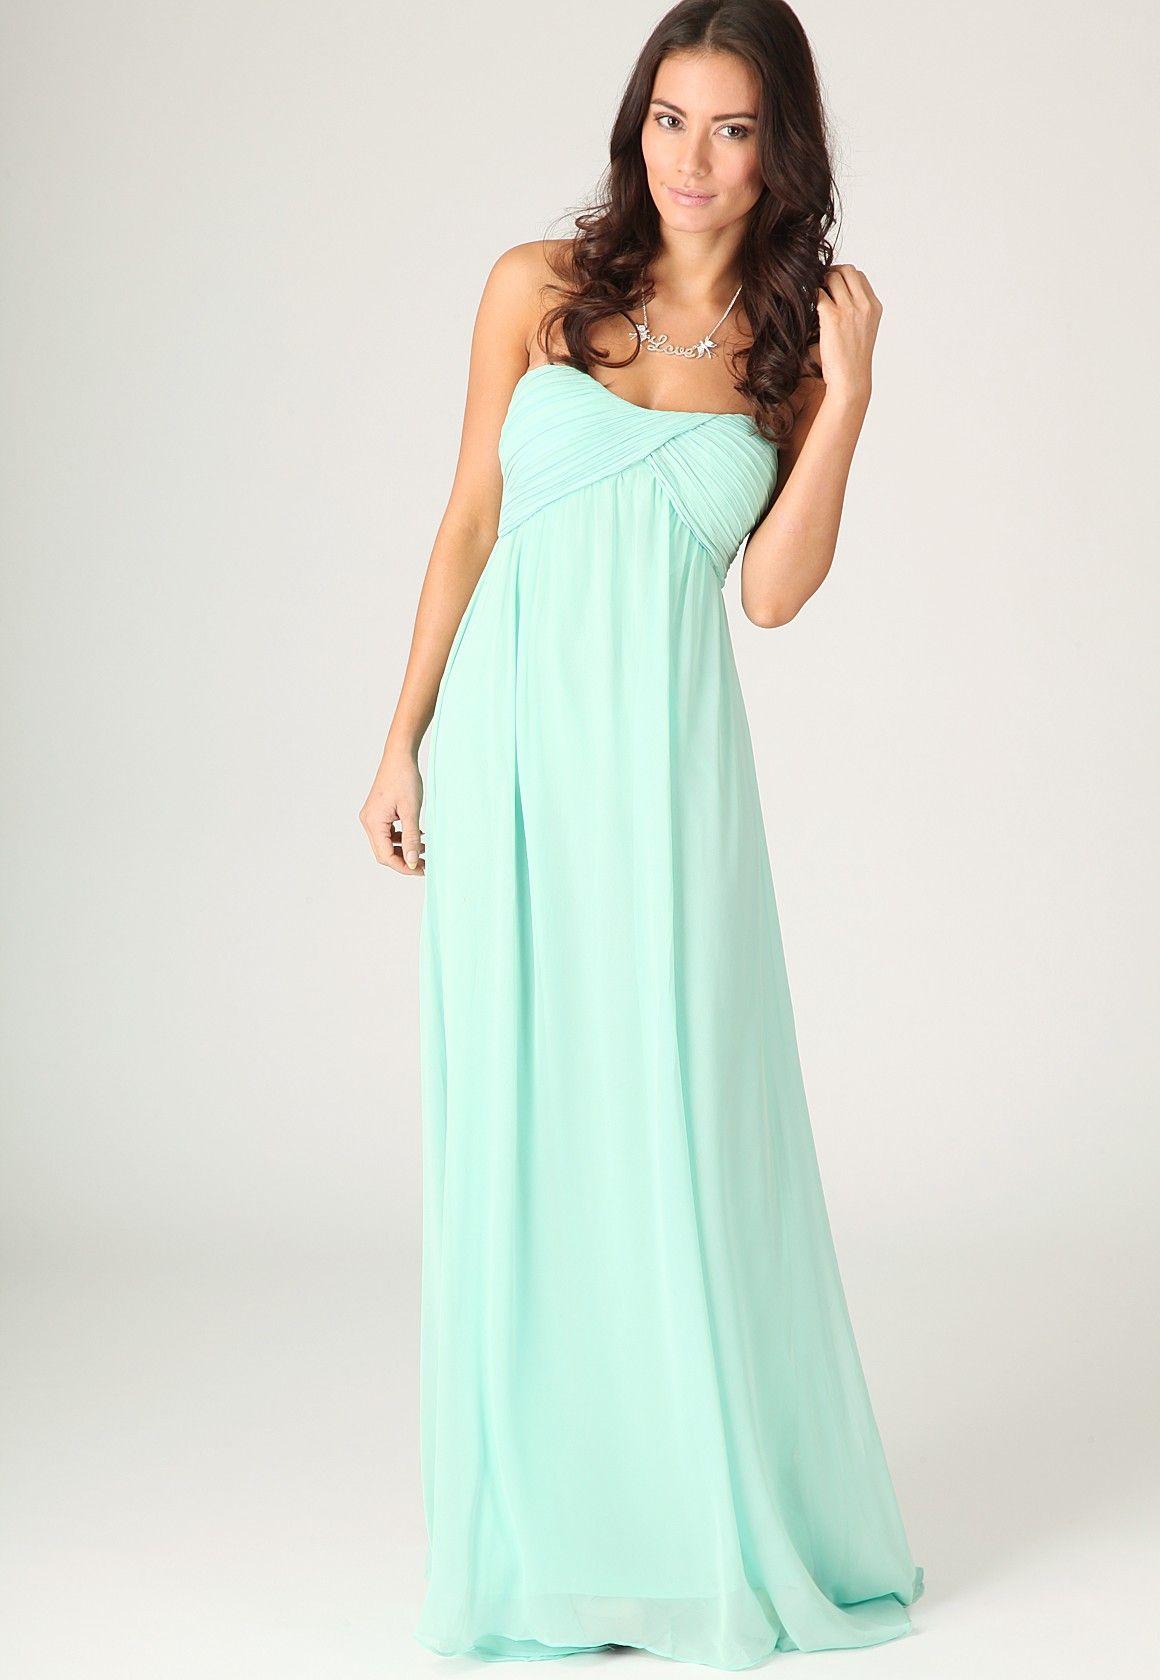 Harriet Gathered Chiffon Look Maxi Dress In Mint | WEDDING ...